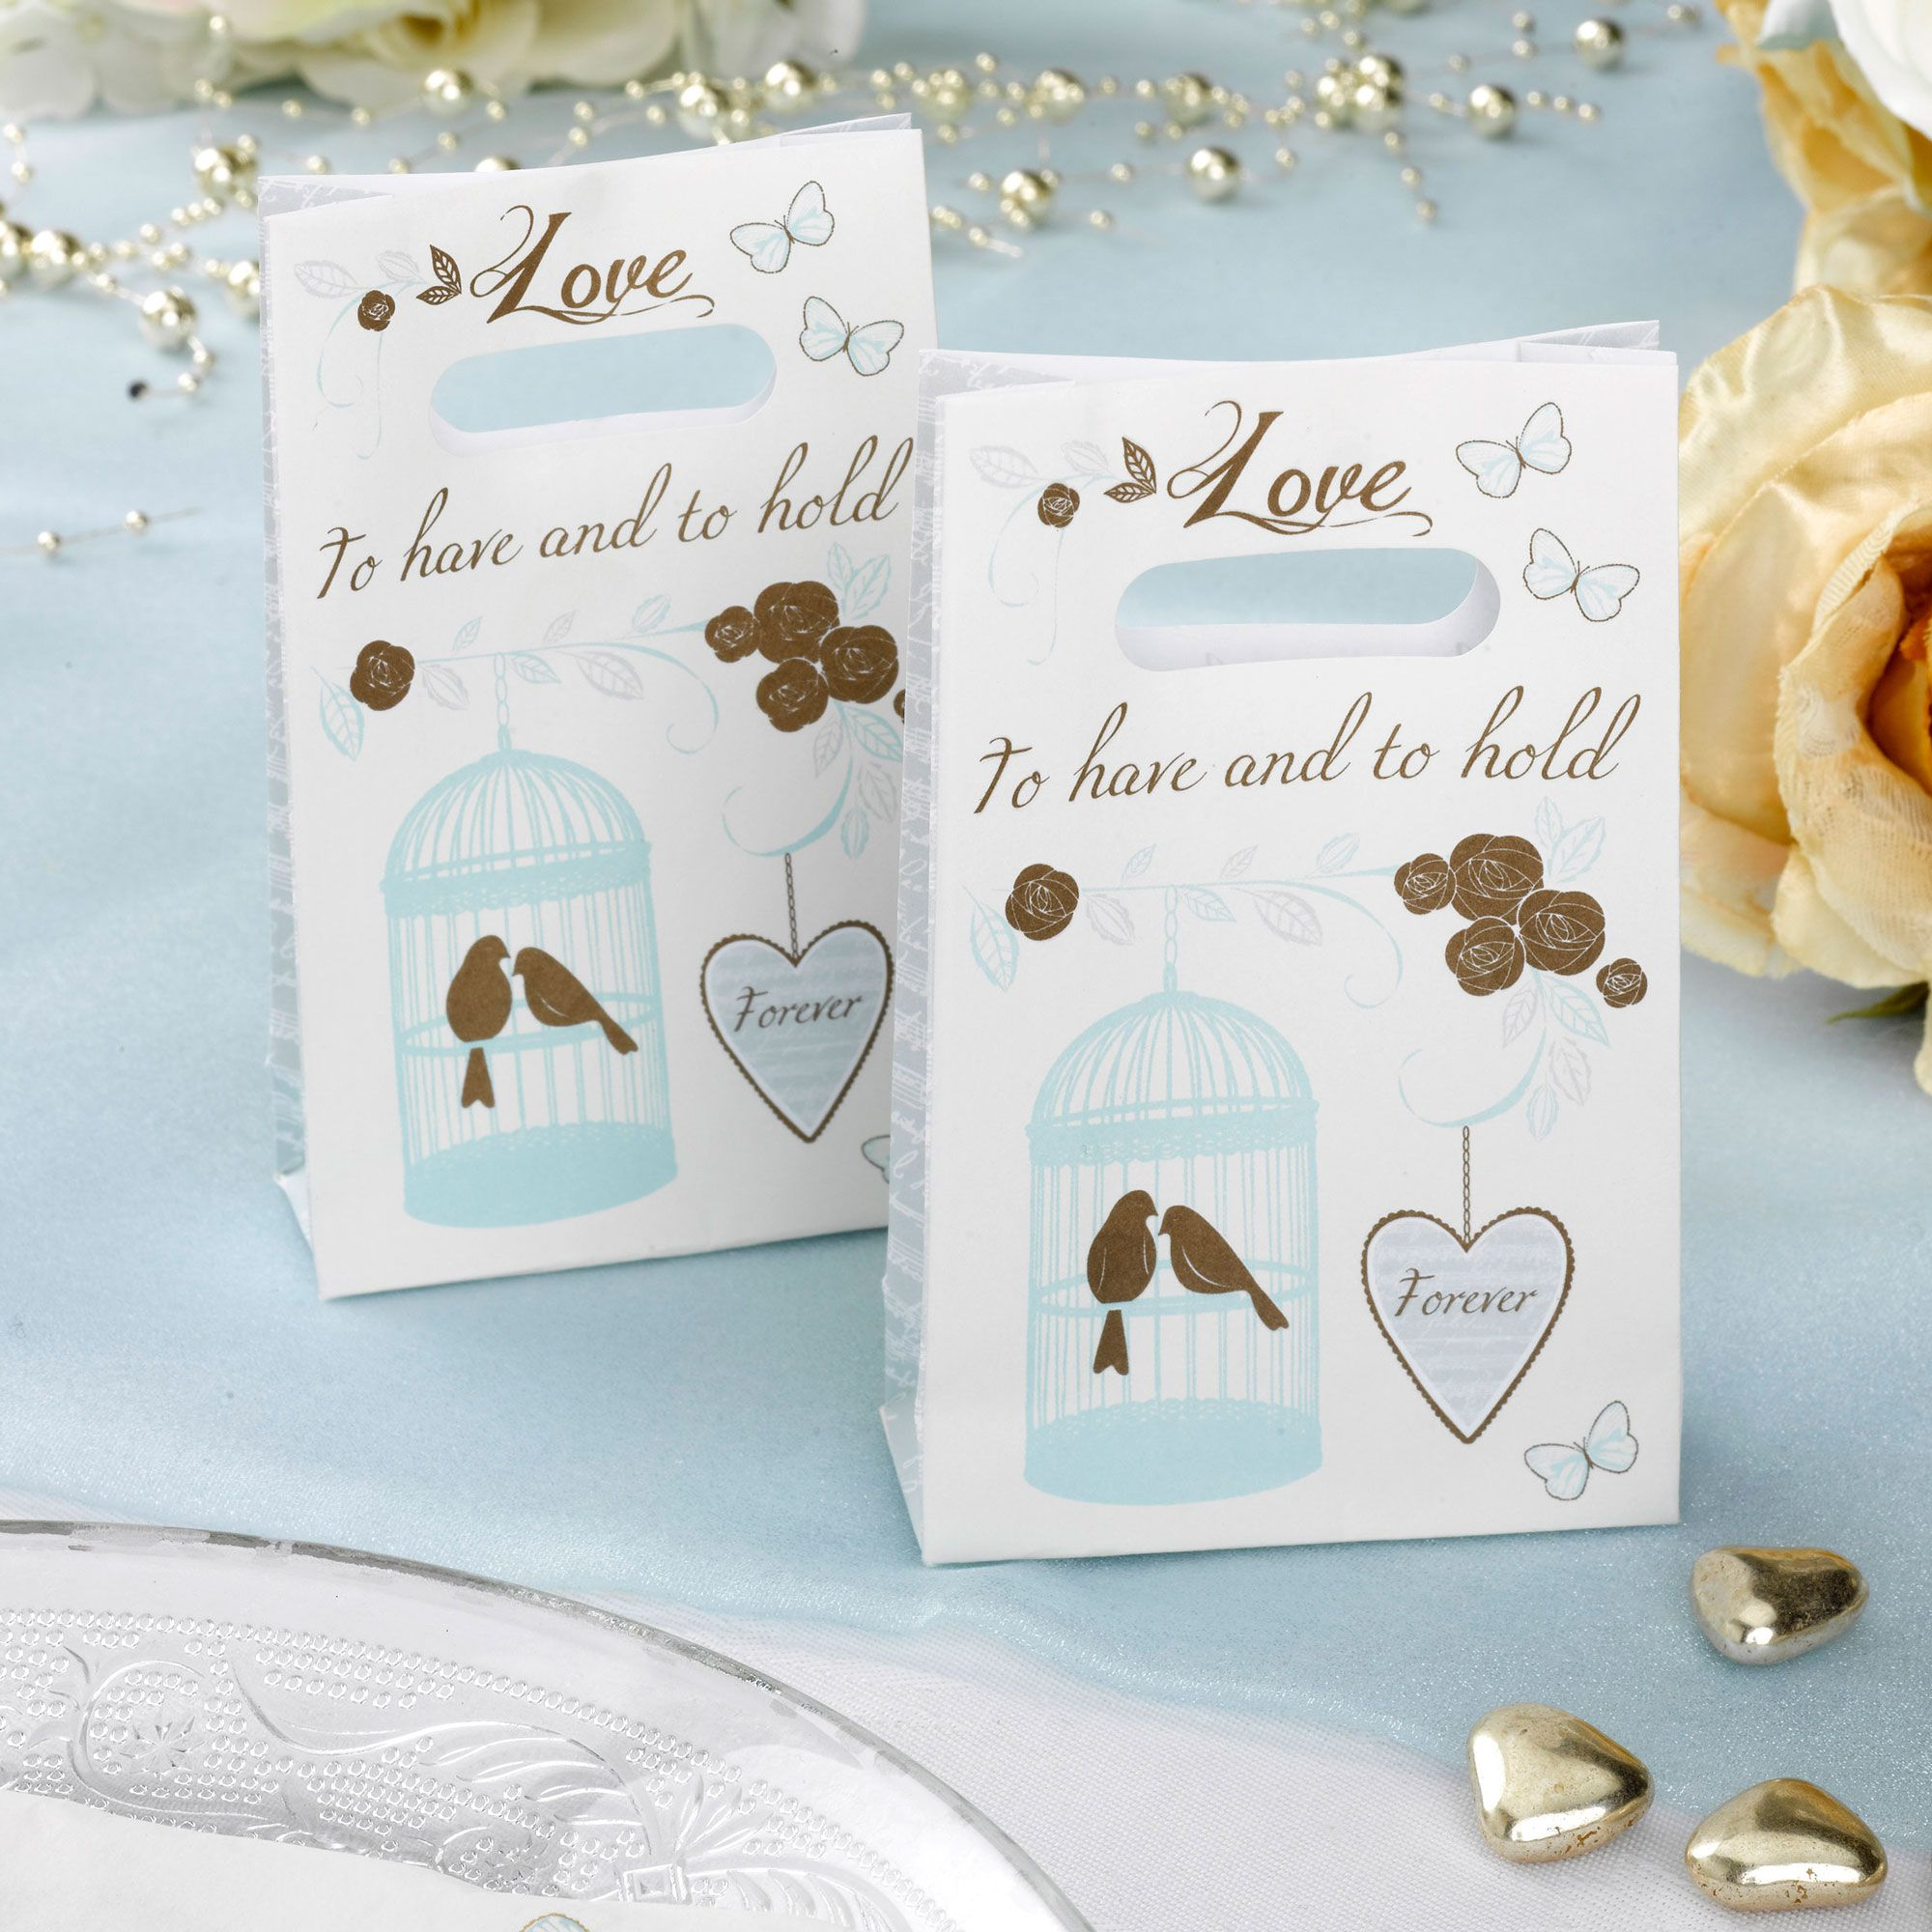 Wedding - Favour Bags - To Have and To Hold | To Have and To Hold ...